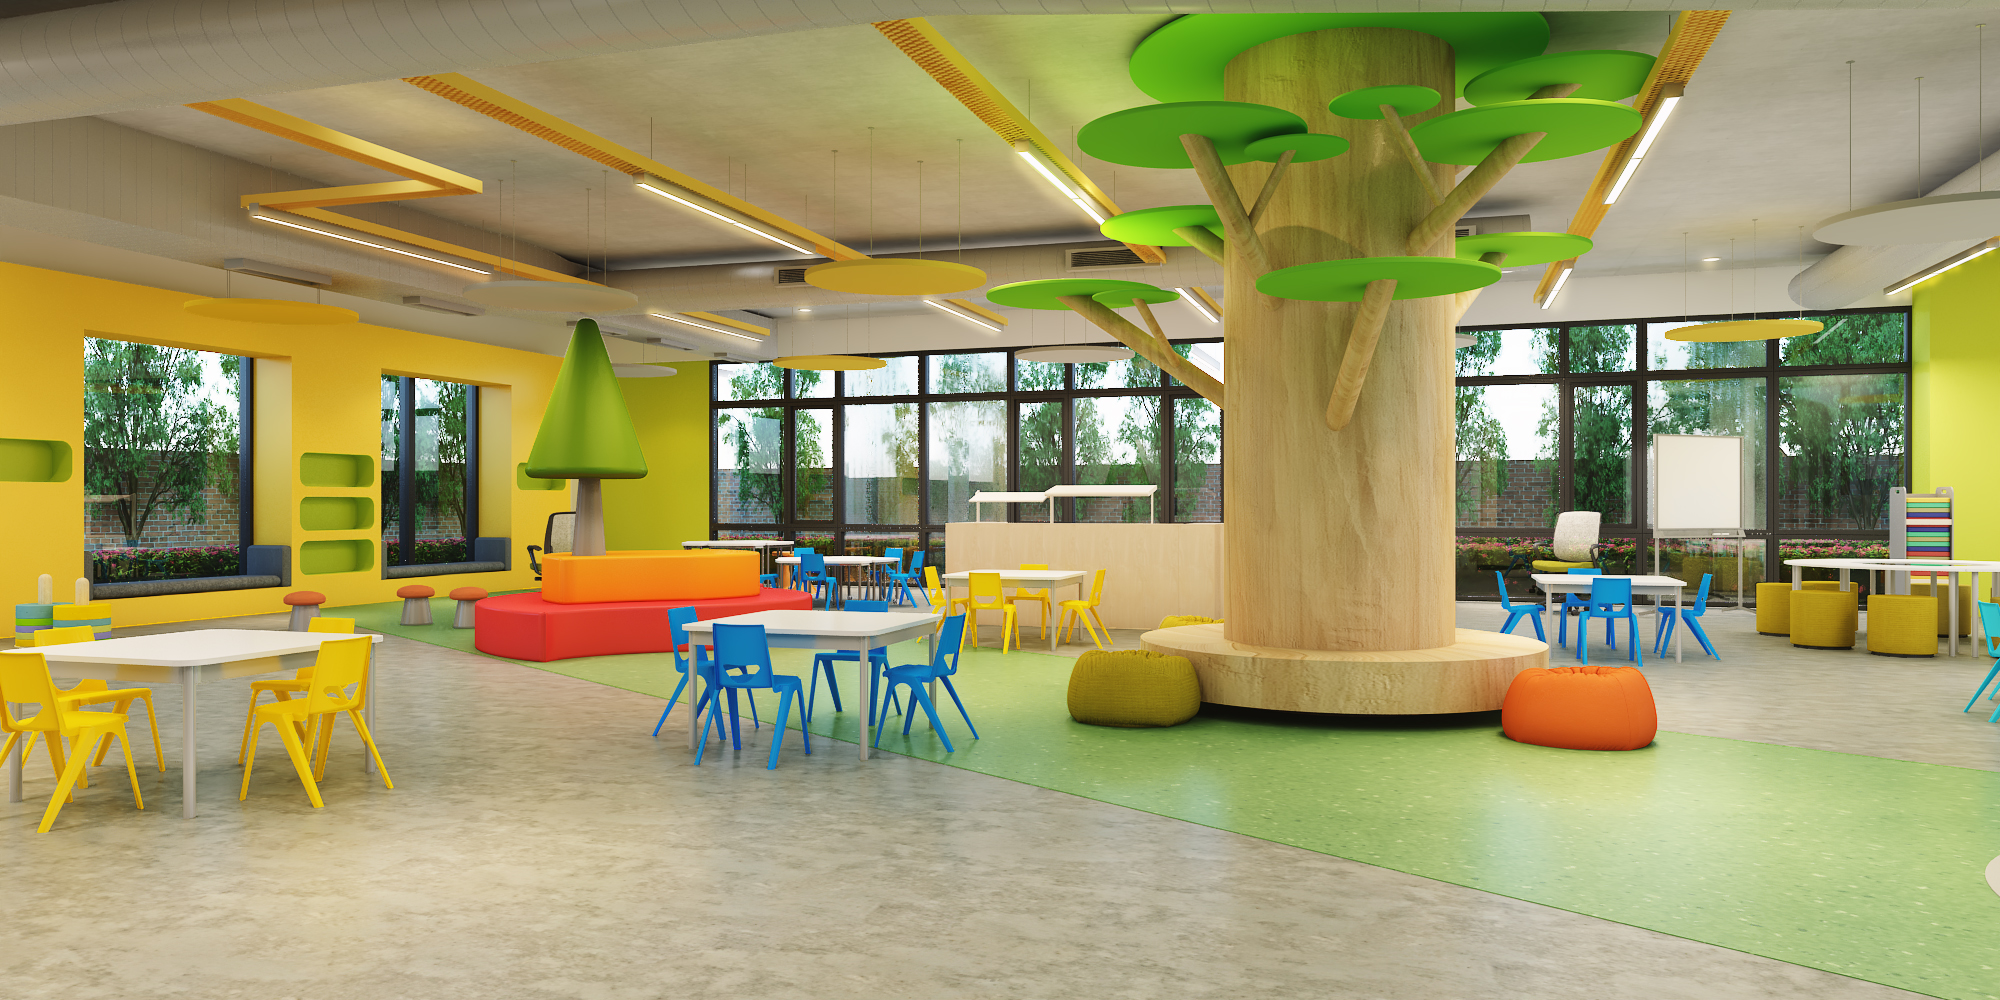 Ground Floor - Common Learning Room